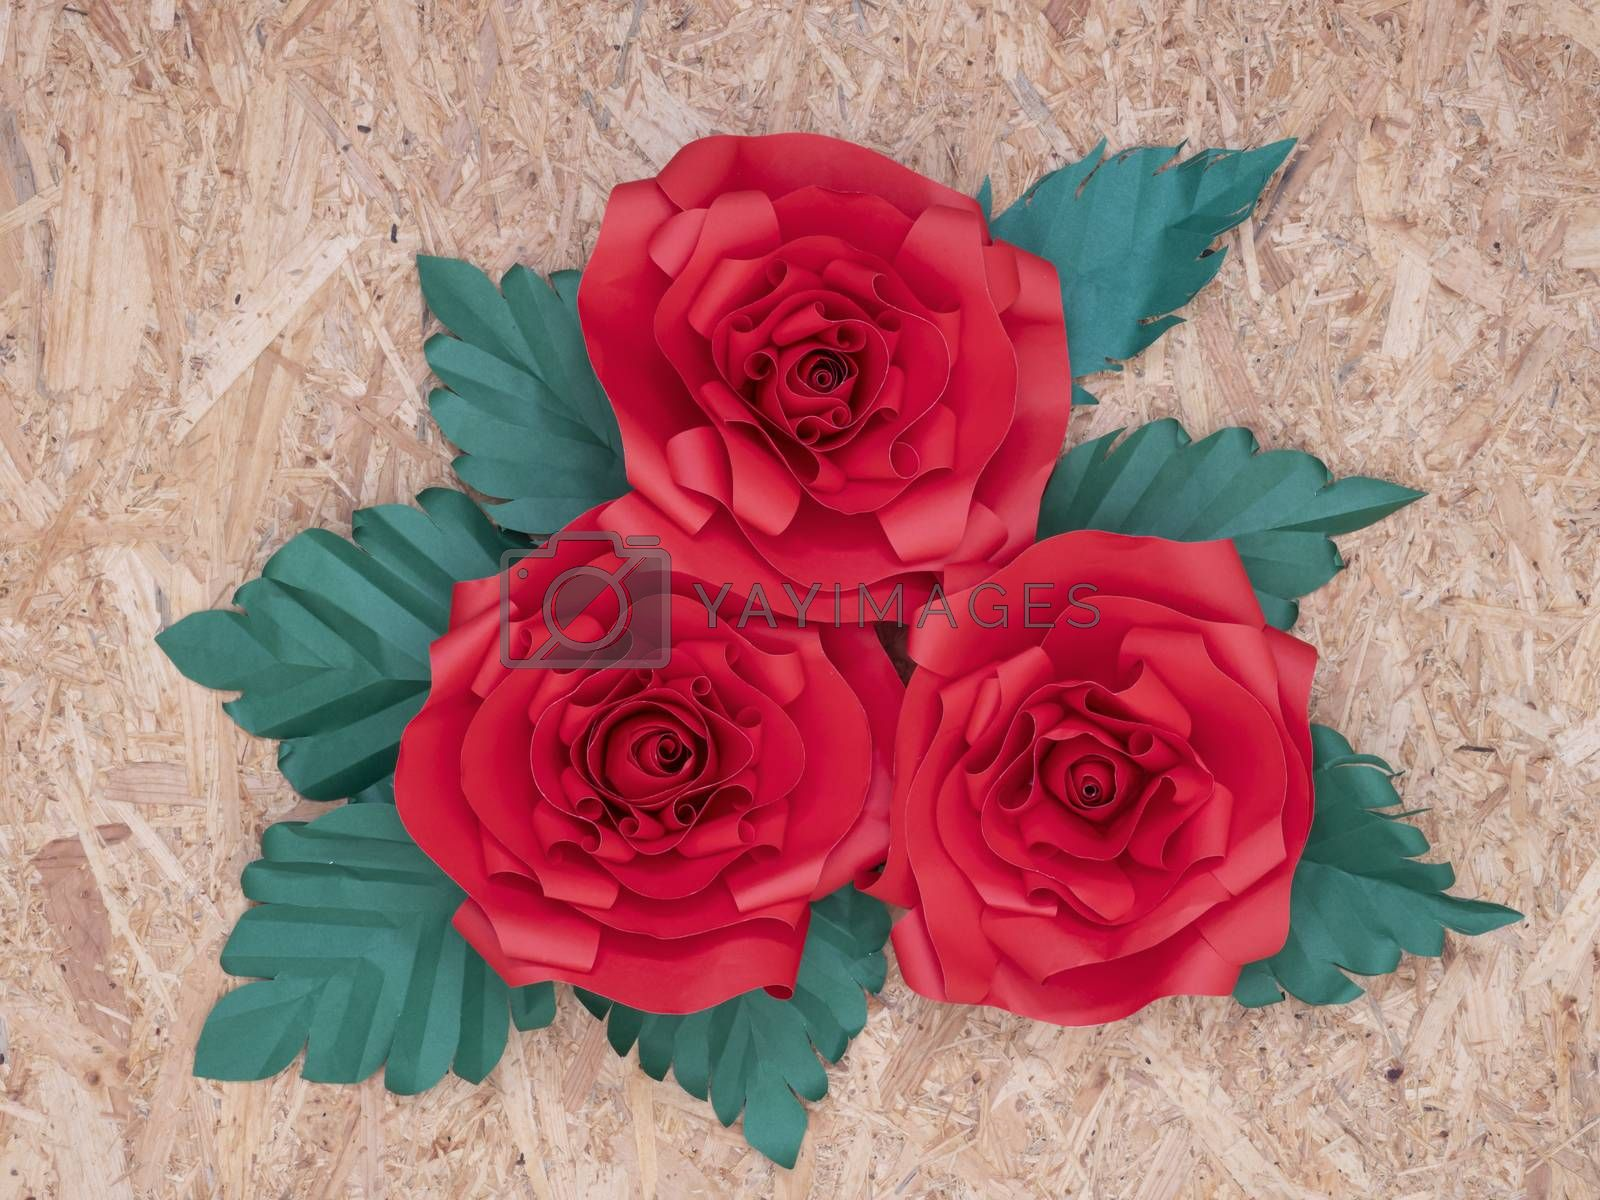 Red paper roses with green leaves by Nawoot